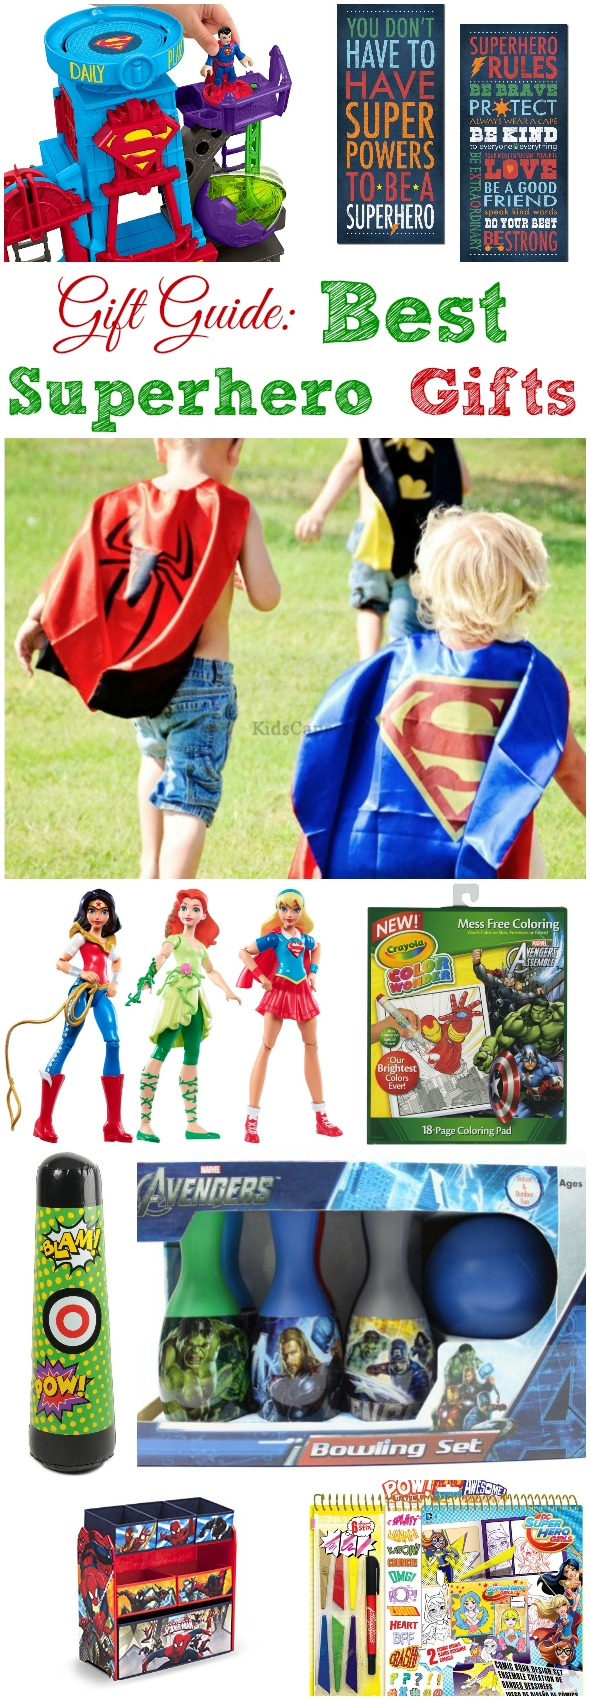 Gift Guide: Best Superhero Gifts (affiliate)